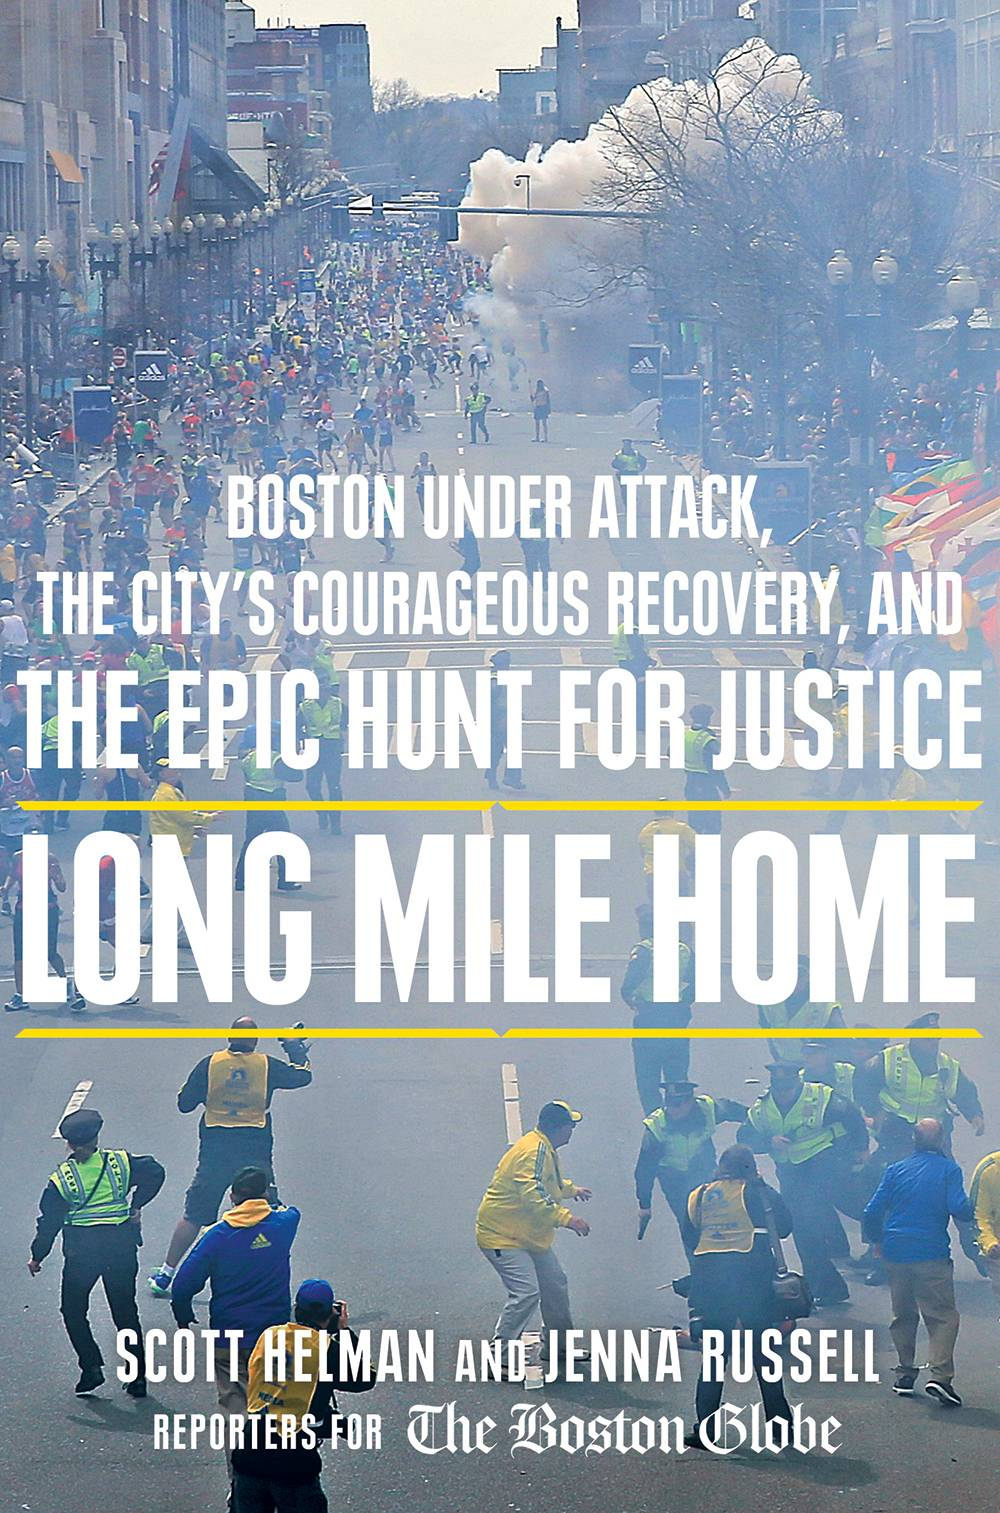 "Boston Globe reporters Scott Helman and Jenna Russell wrote ""Long Mile Home: Boston Under Attack, the City's Courageous Recovery, and the Epic Hunt for Justice."""